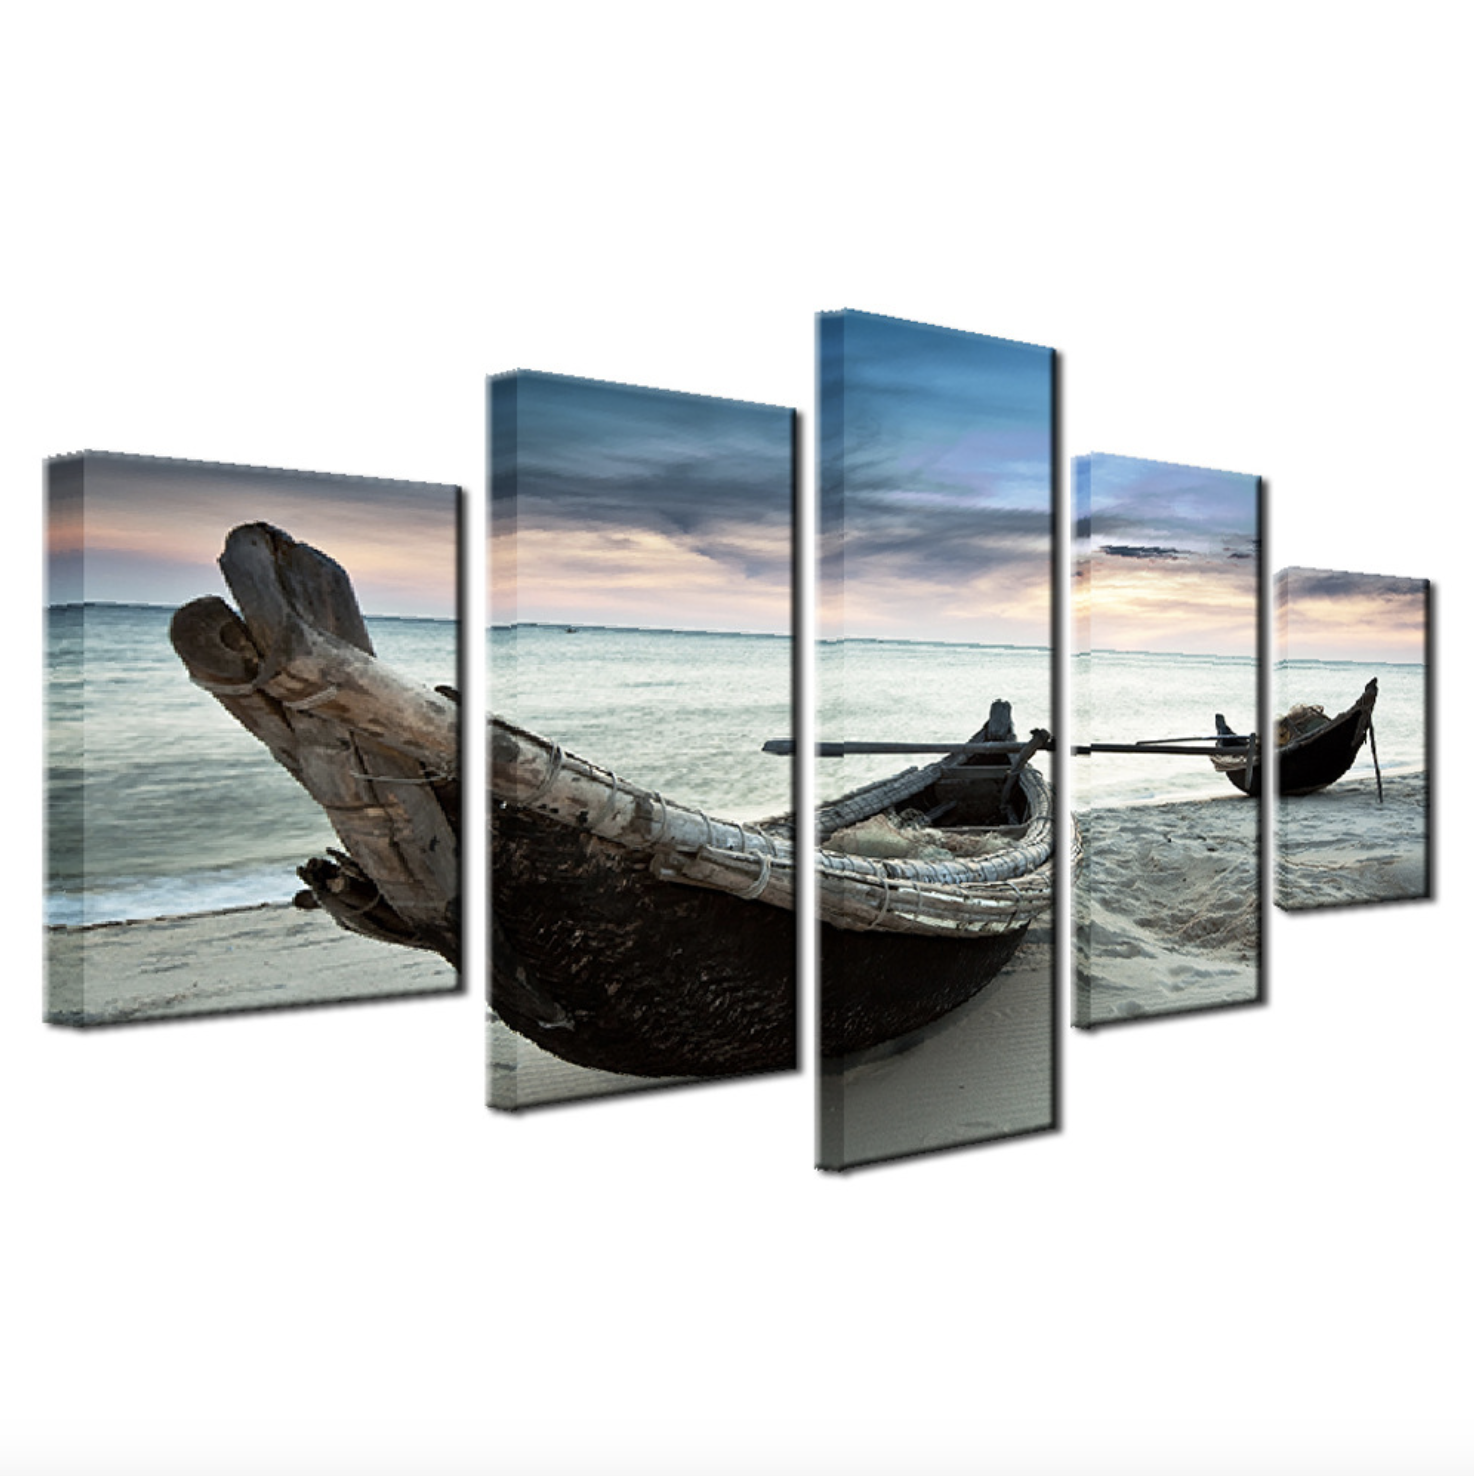 5 Panel Modern Scenery Boats On The Beach Canvas Printed Wall Decoration Painting with Water-proof